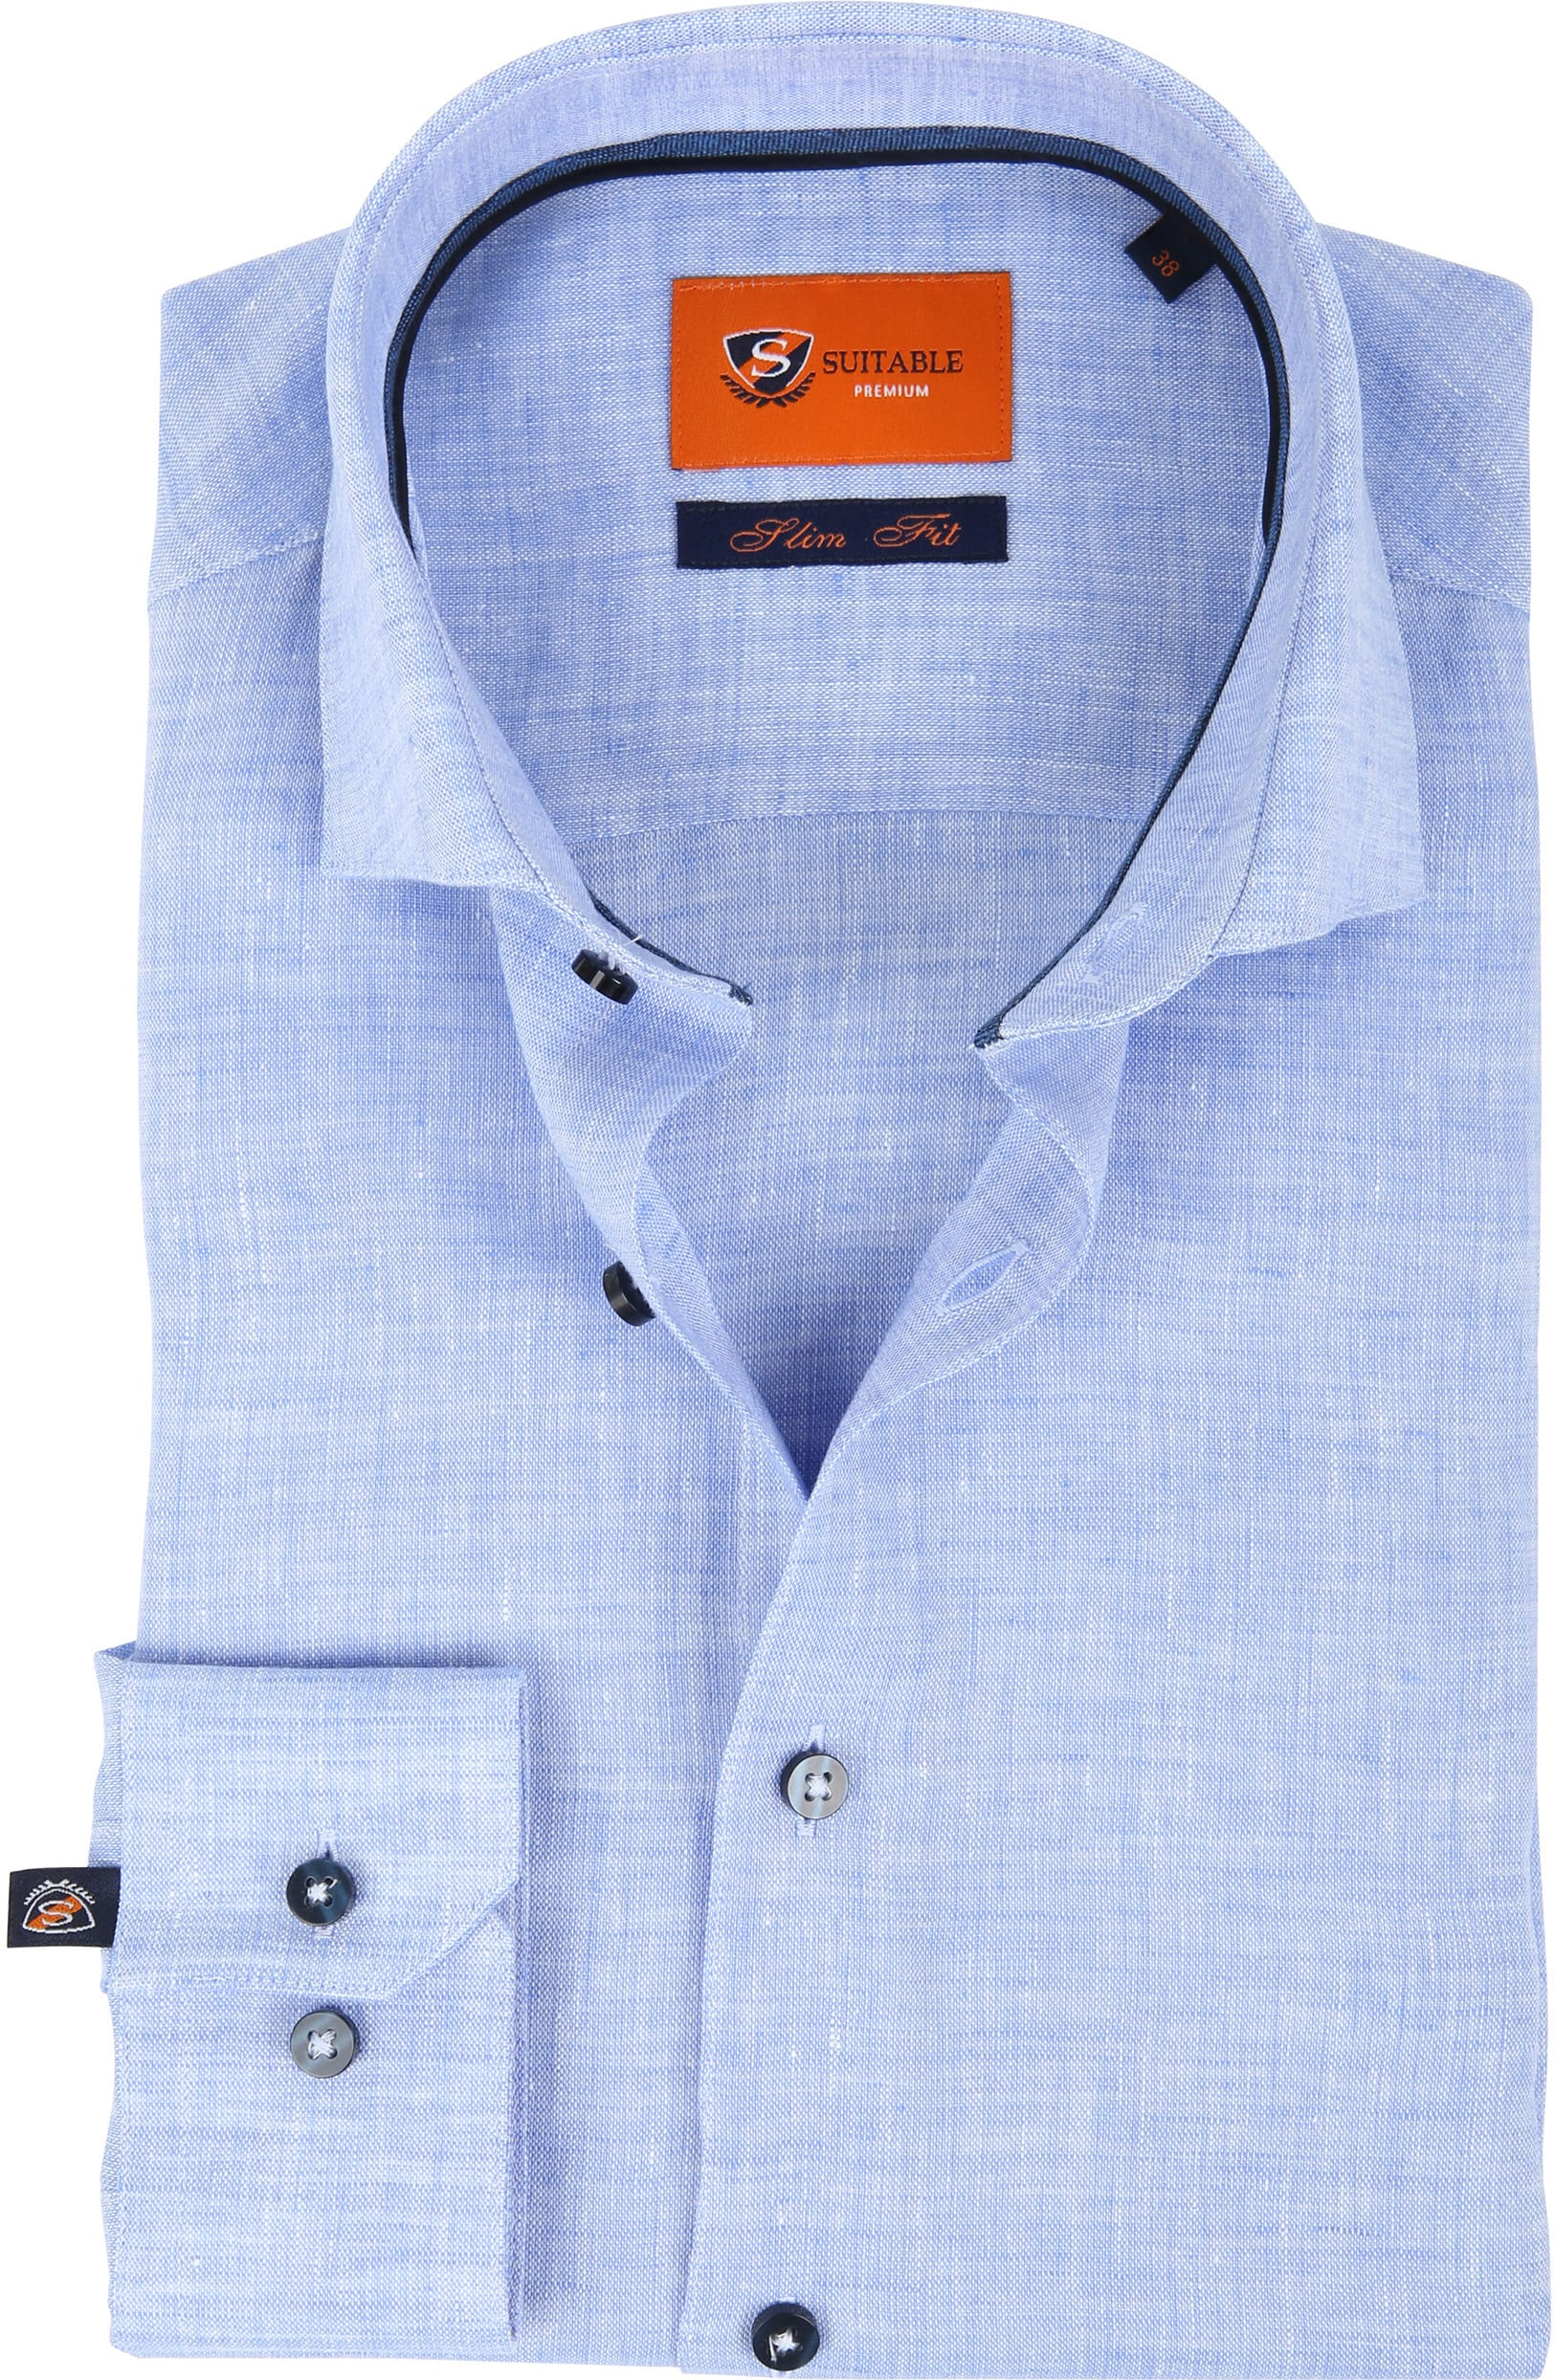 Suitable Shirt Linen Blue D81-12 foto 0